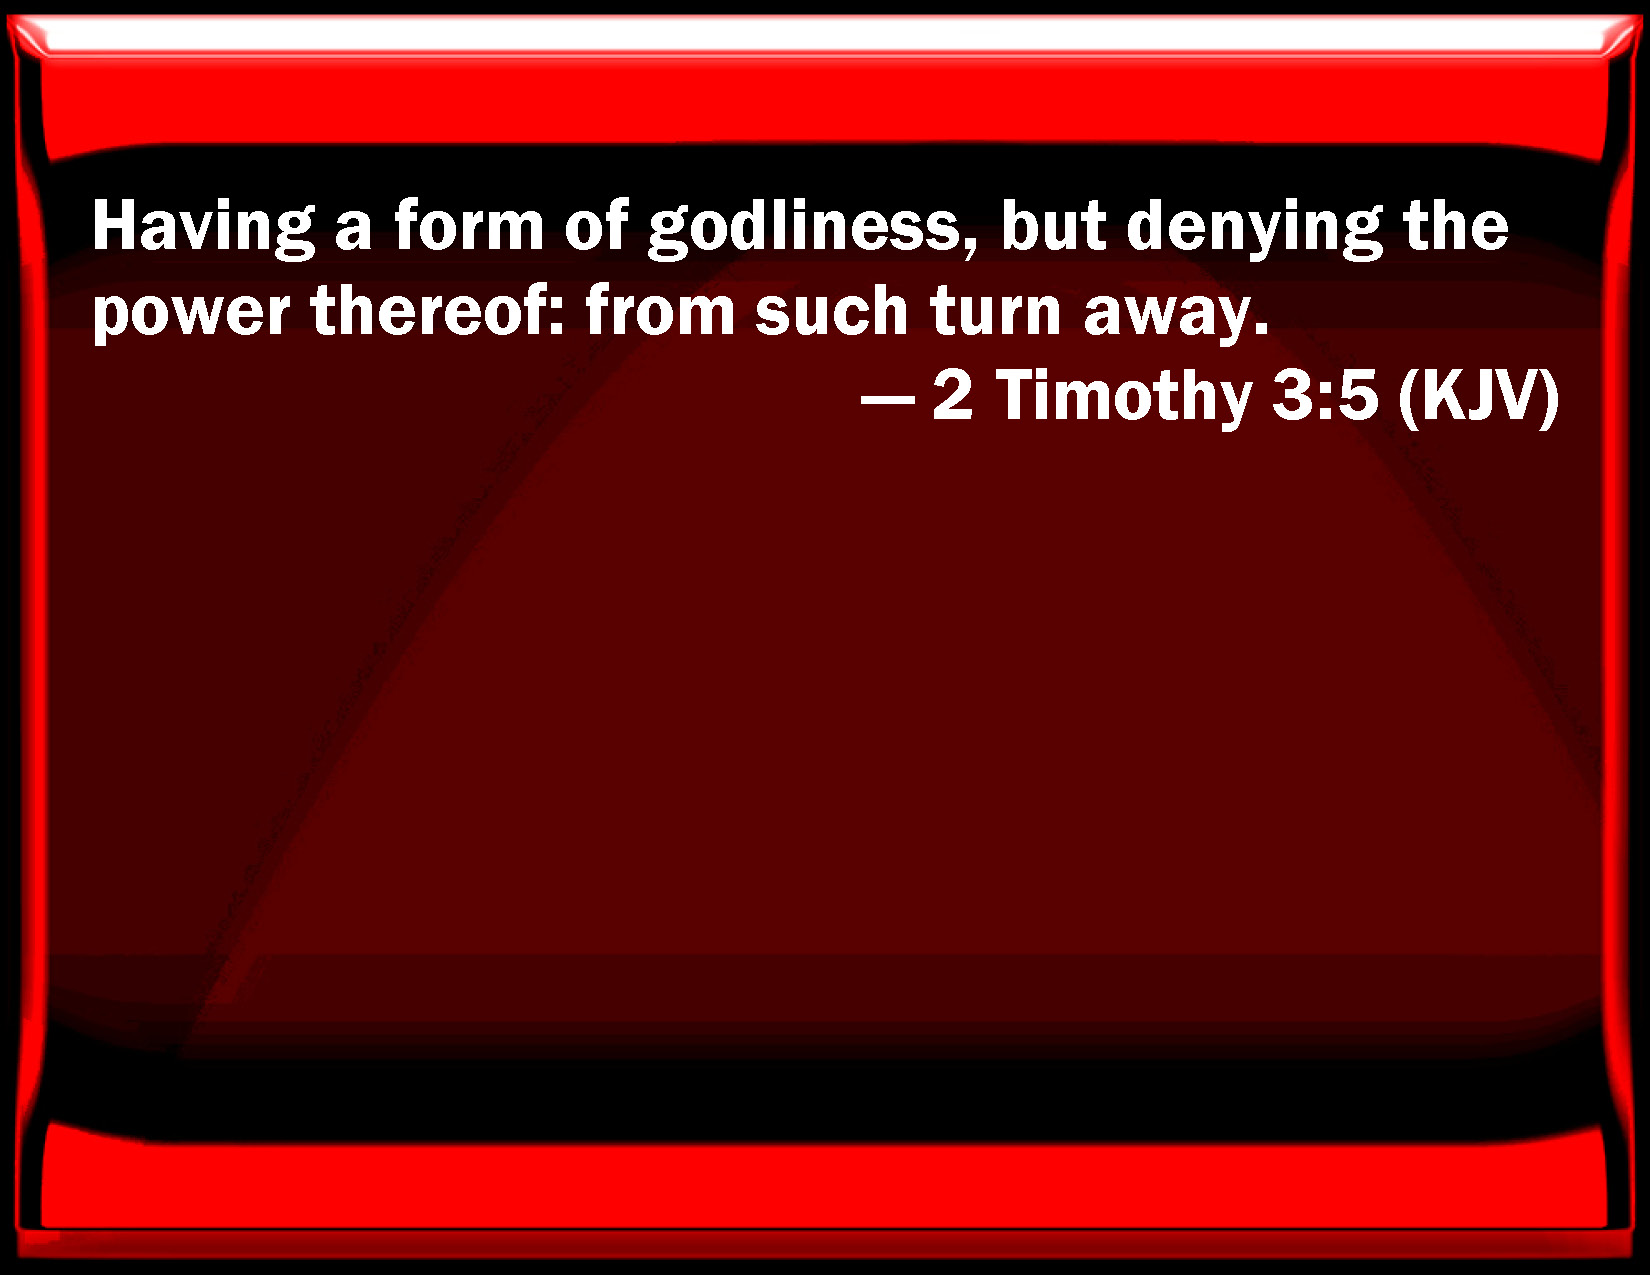 Bible Verse Powerpoint Slides for 2 Timothy 3:5